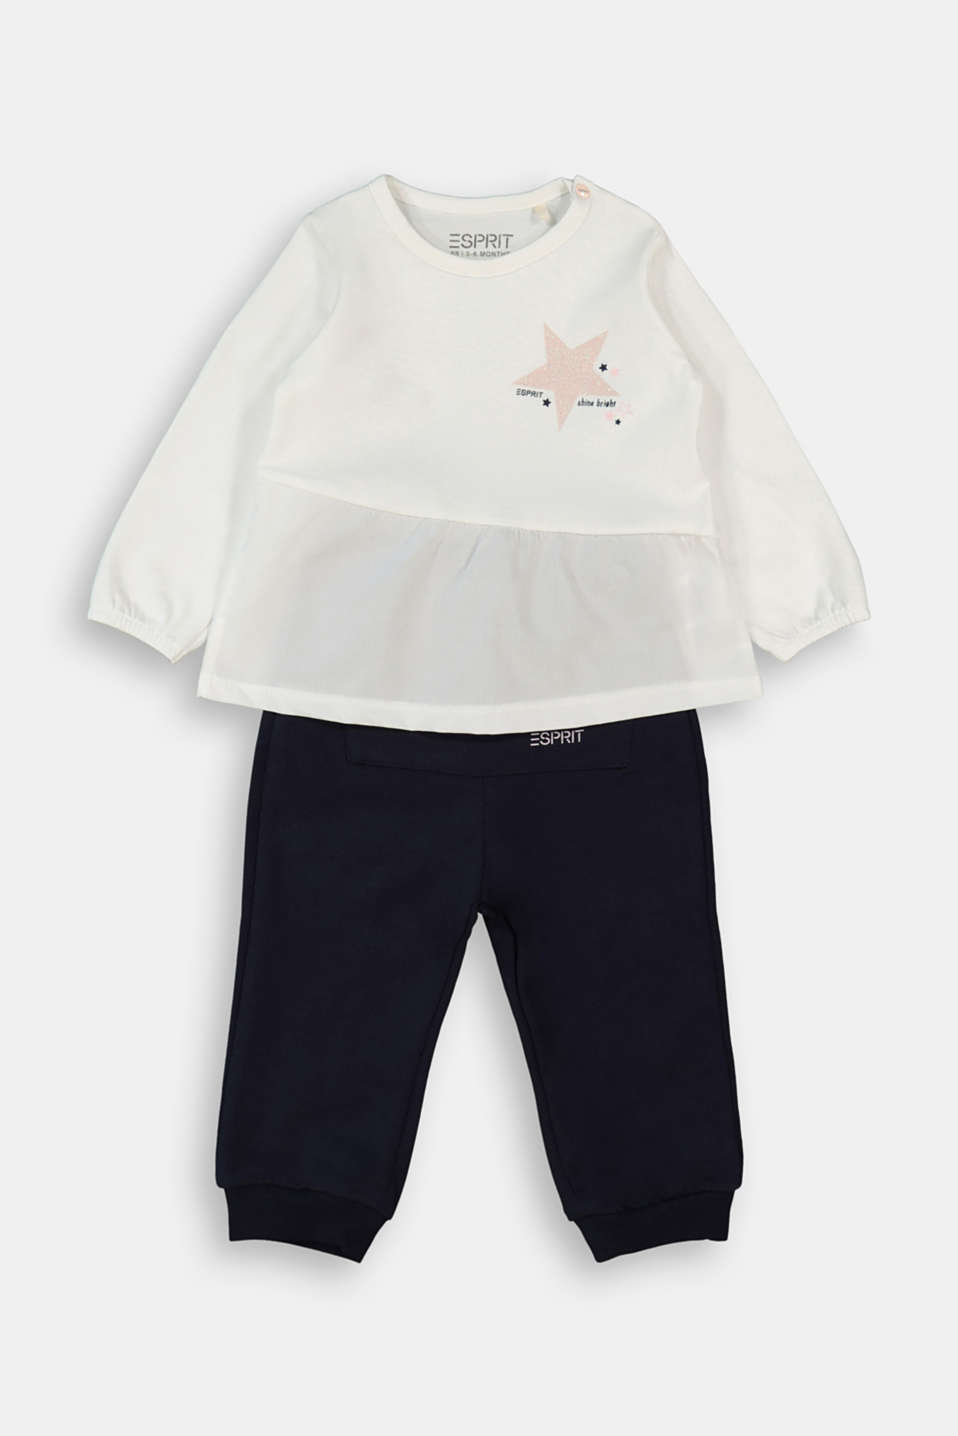 Esprit - Set: top and trousers, organic cotton